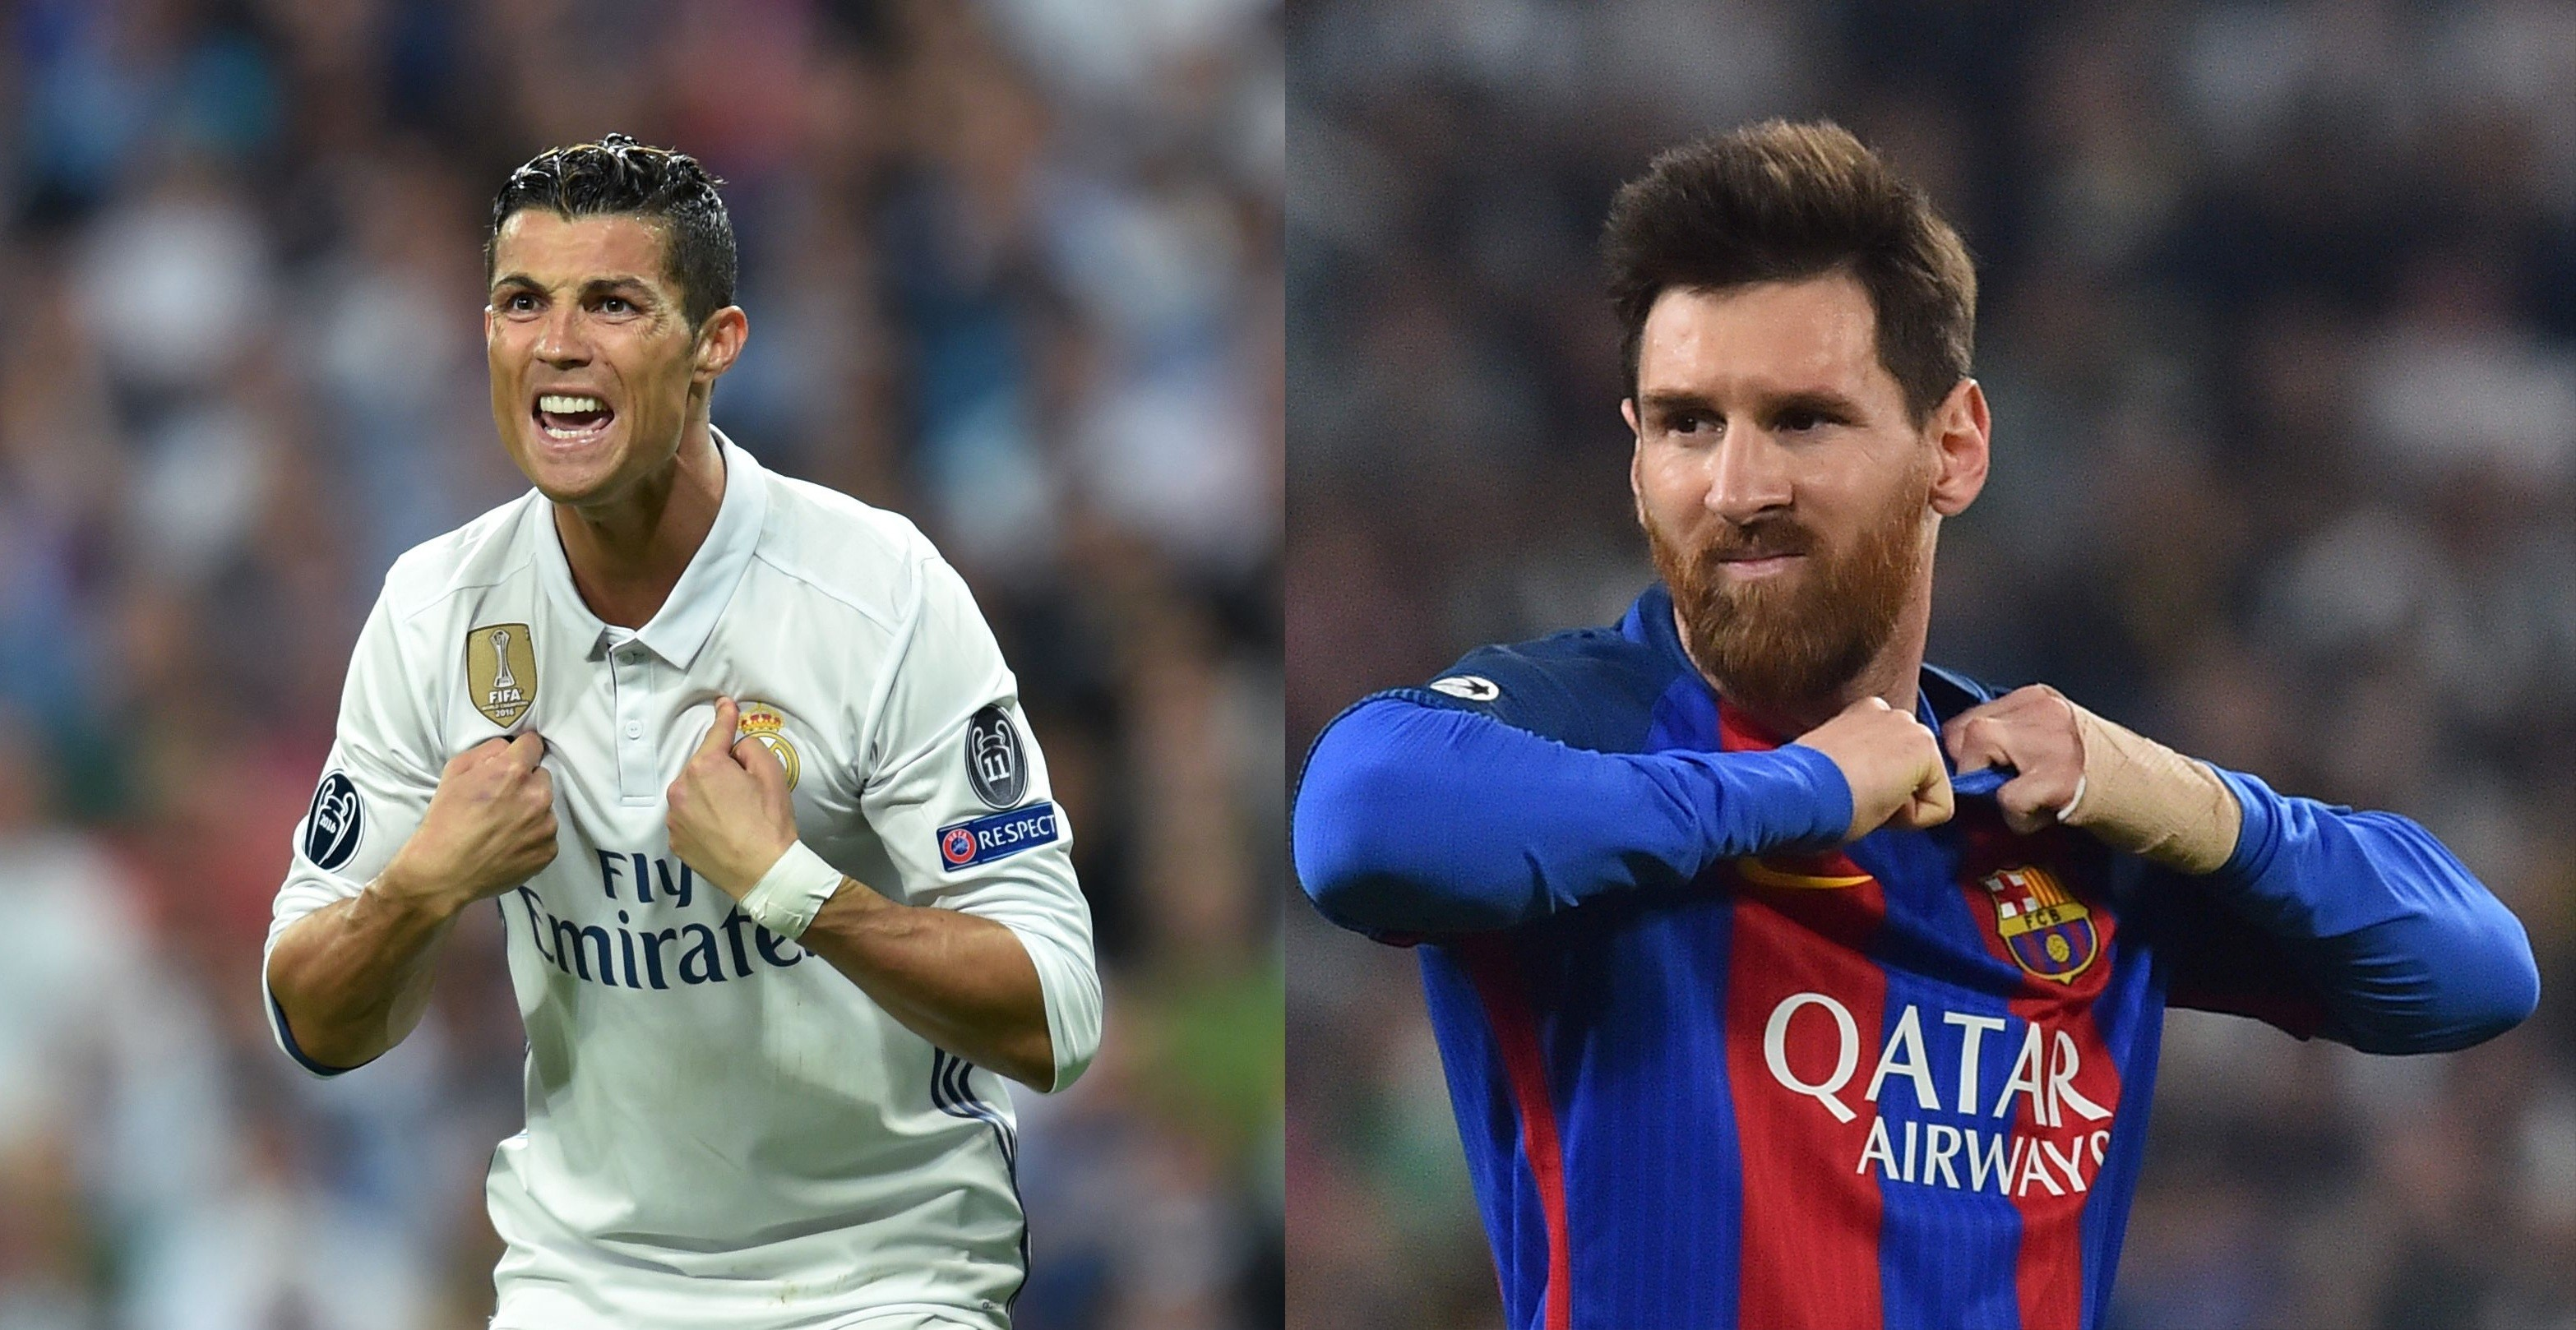 ronaldo vs messi Lionel messi vs cristiano ronaldo row ends in divorce 'as football-mad russian couple split during world cup 2018' according to 'argumento i fakti' the couple – named only as arsen and lyudmila – fell out when he celebrated argentina's victory over nigeria.